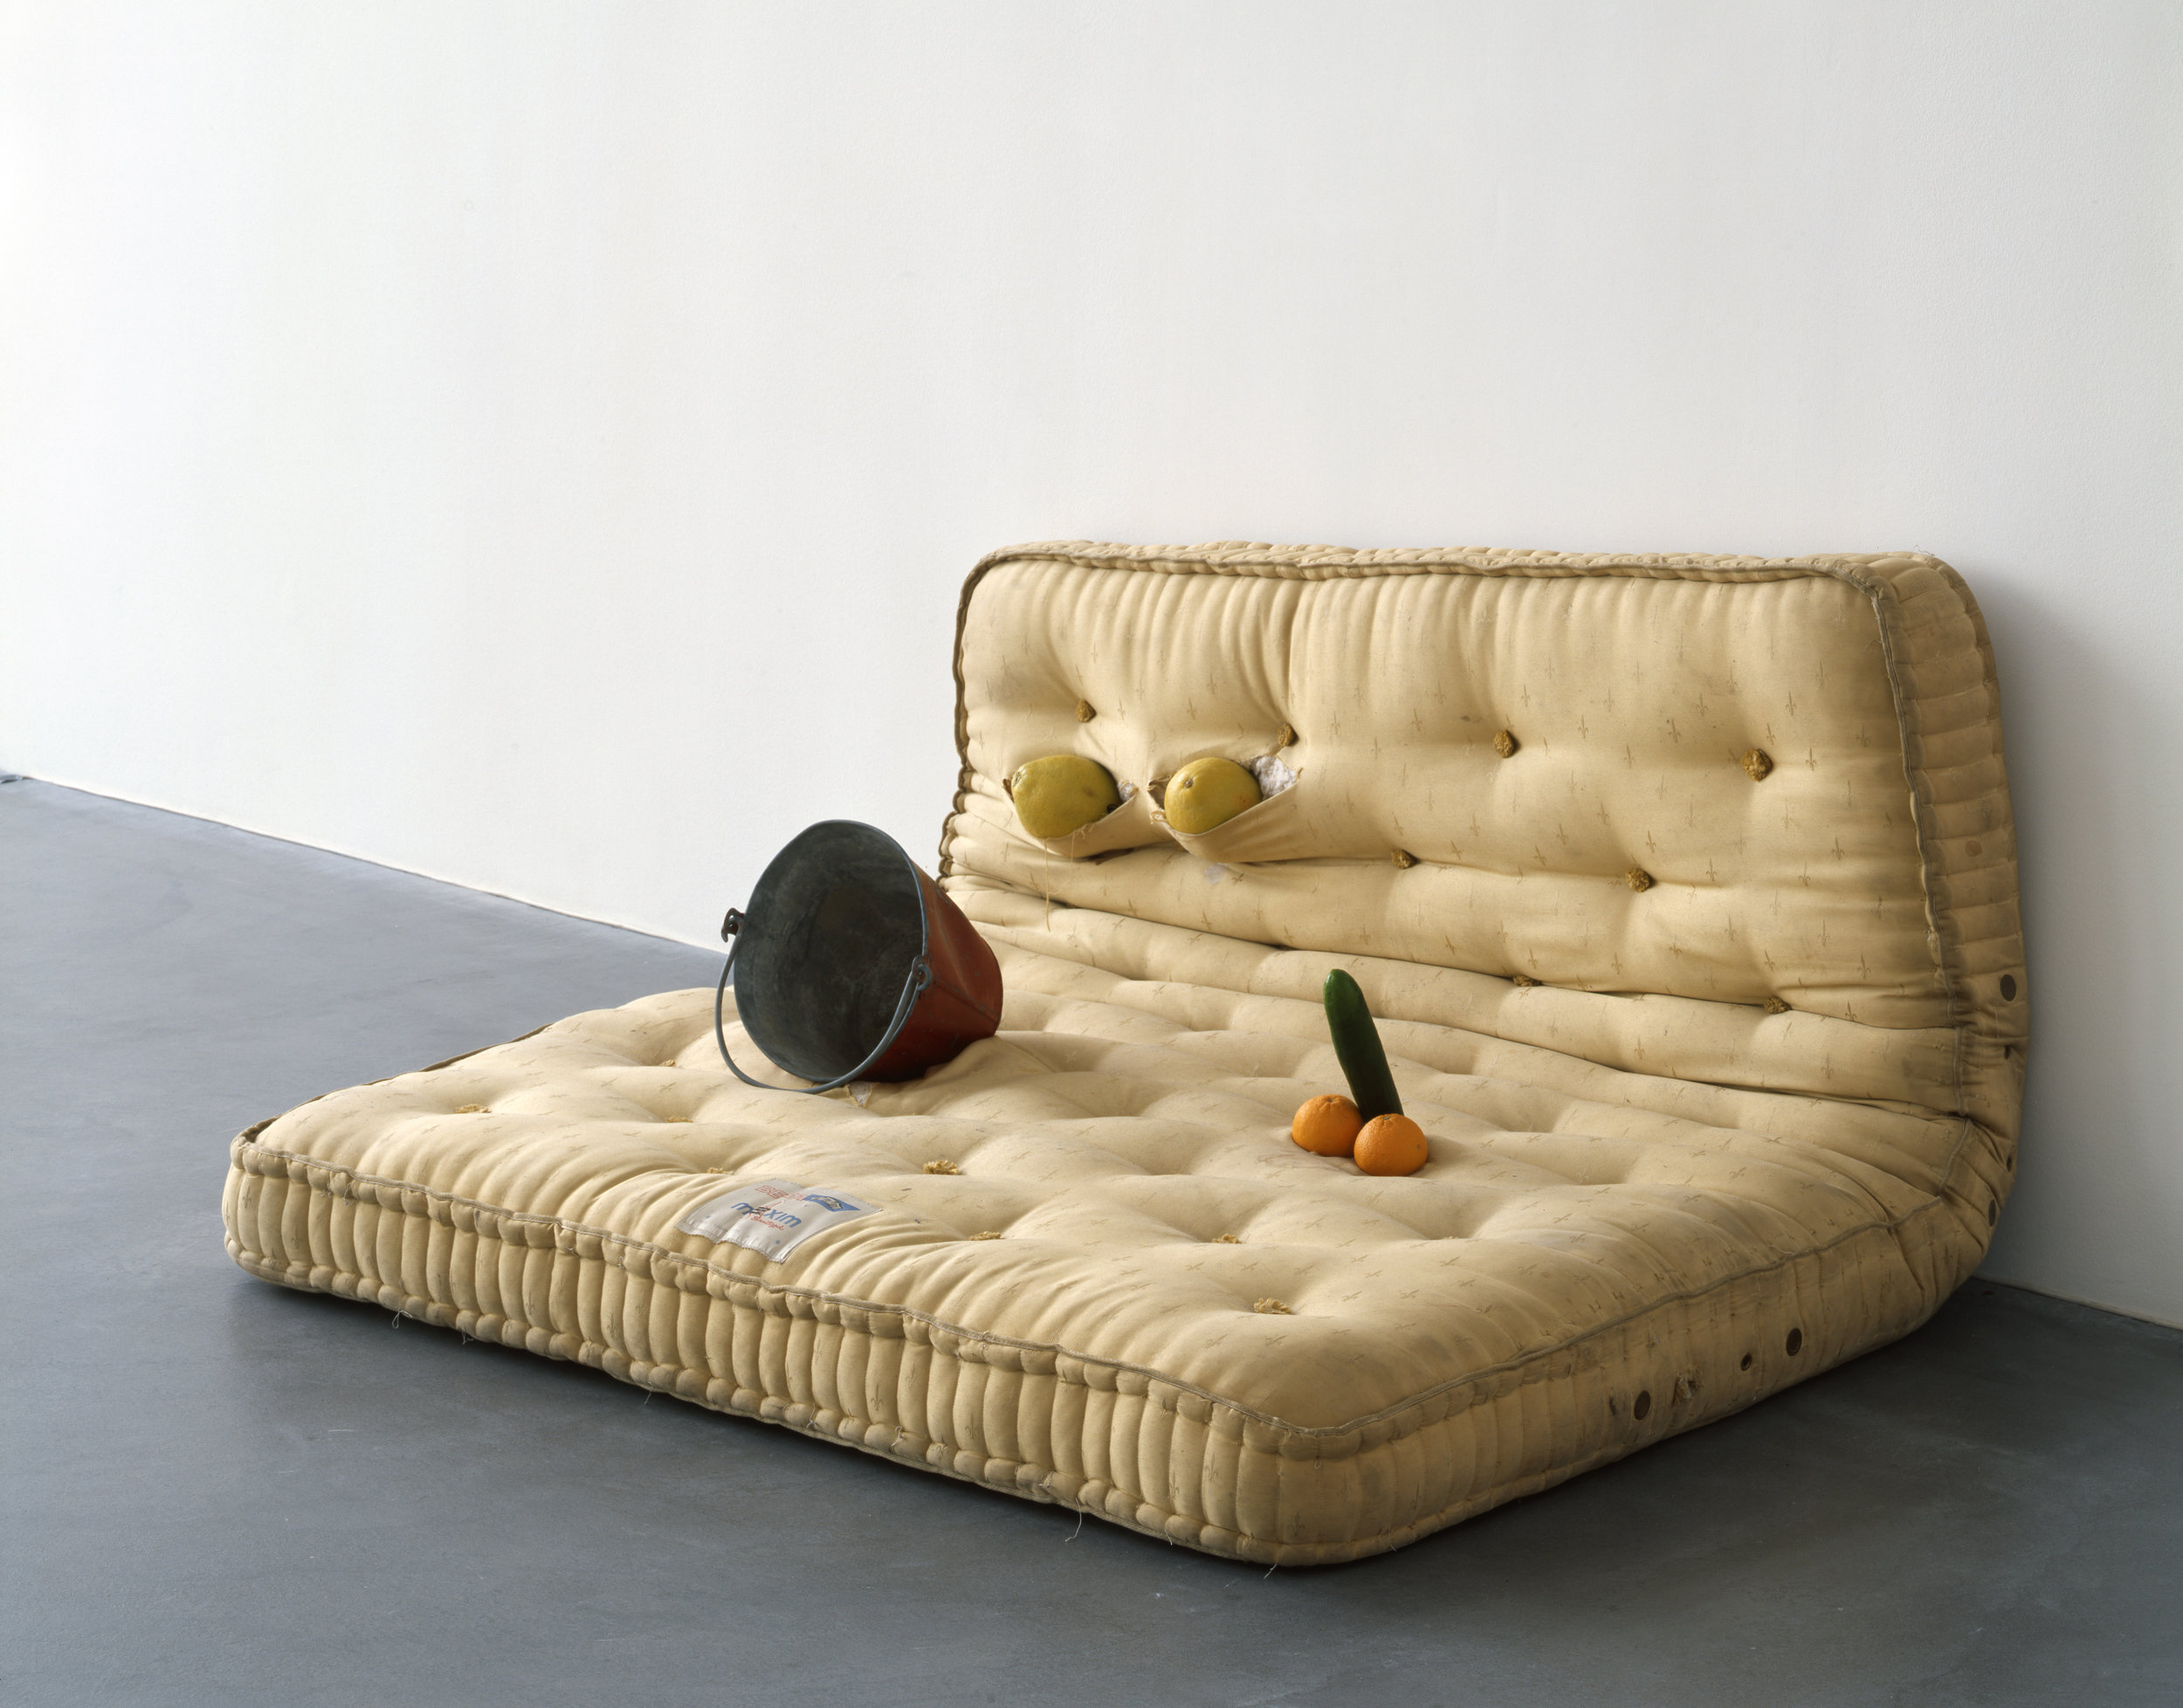 "Sarah Lucas ""Au Naturel"" 1994. Mattress, melons, oranges, cucumber, and water bucket, 33 1/8 x 66 1/8 x 57 in. © Sarah Lucas. Courtesy Sadie Coles HQ, London"